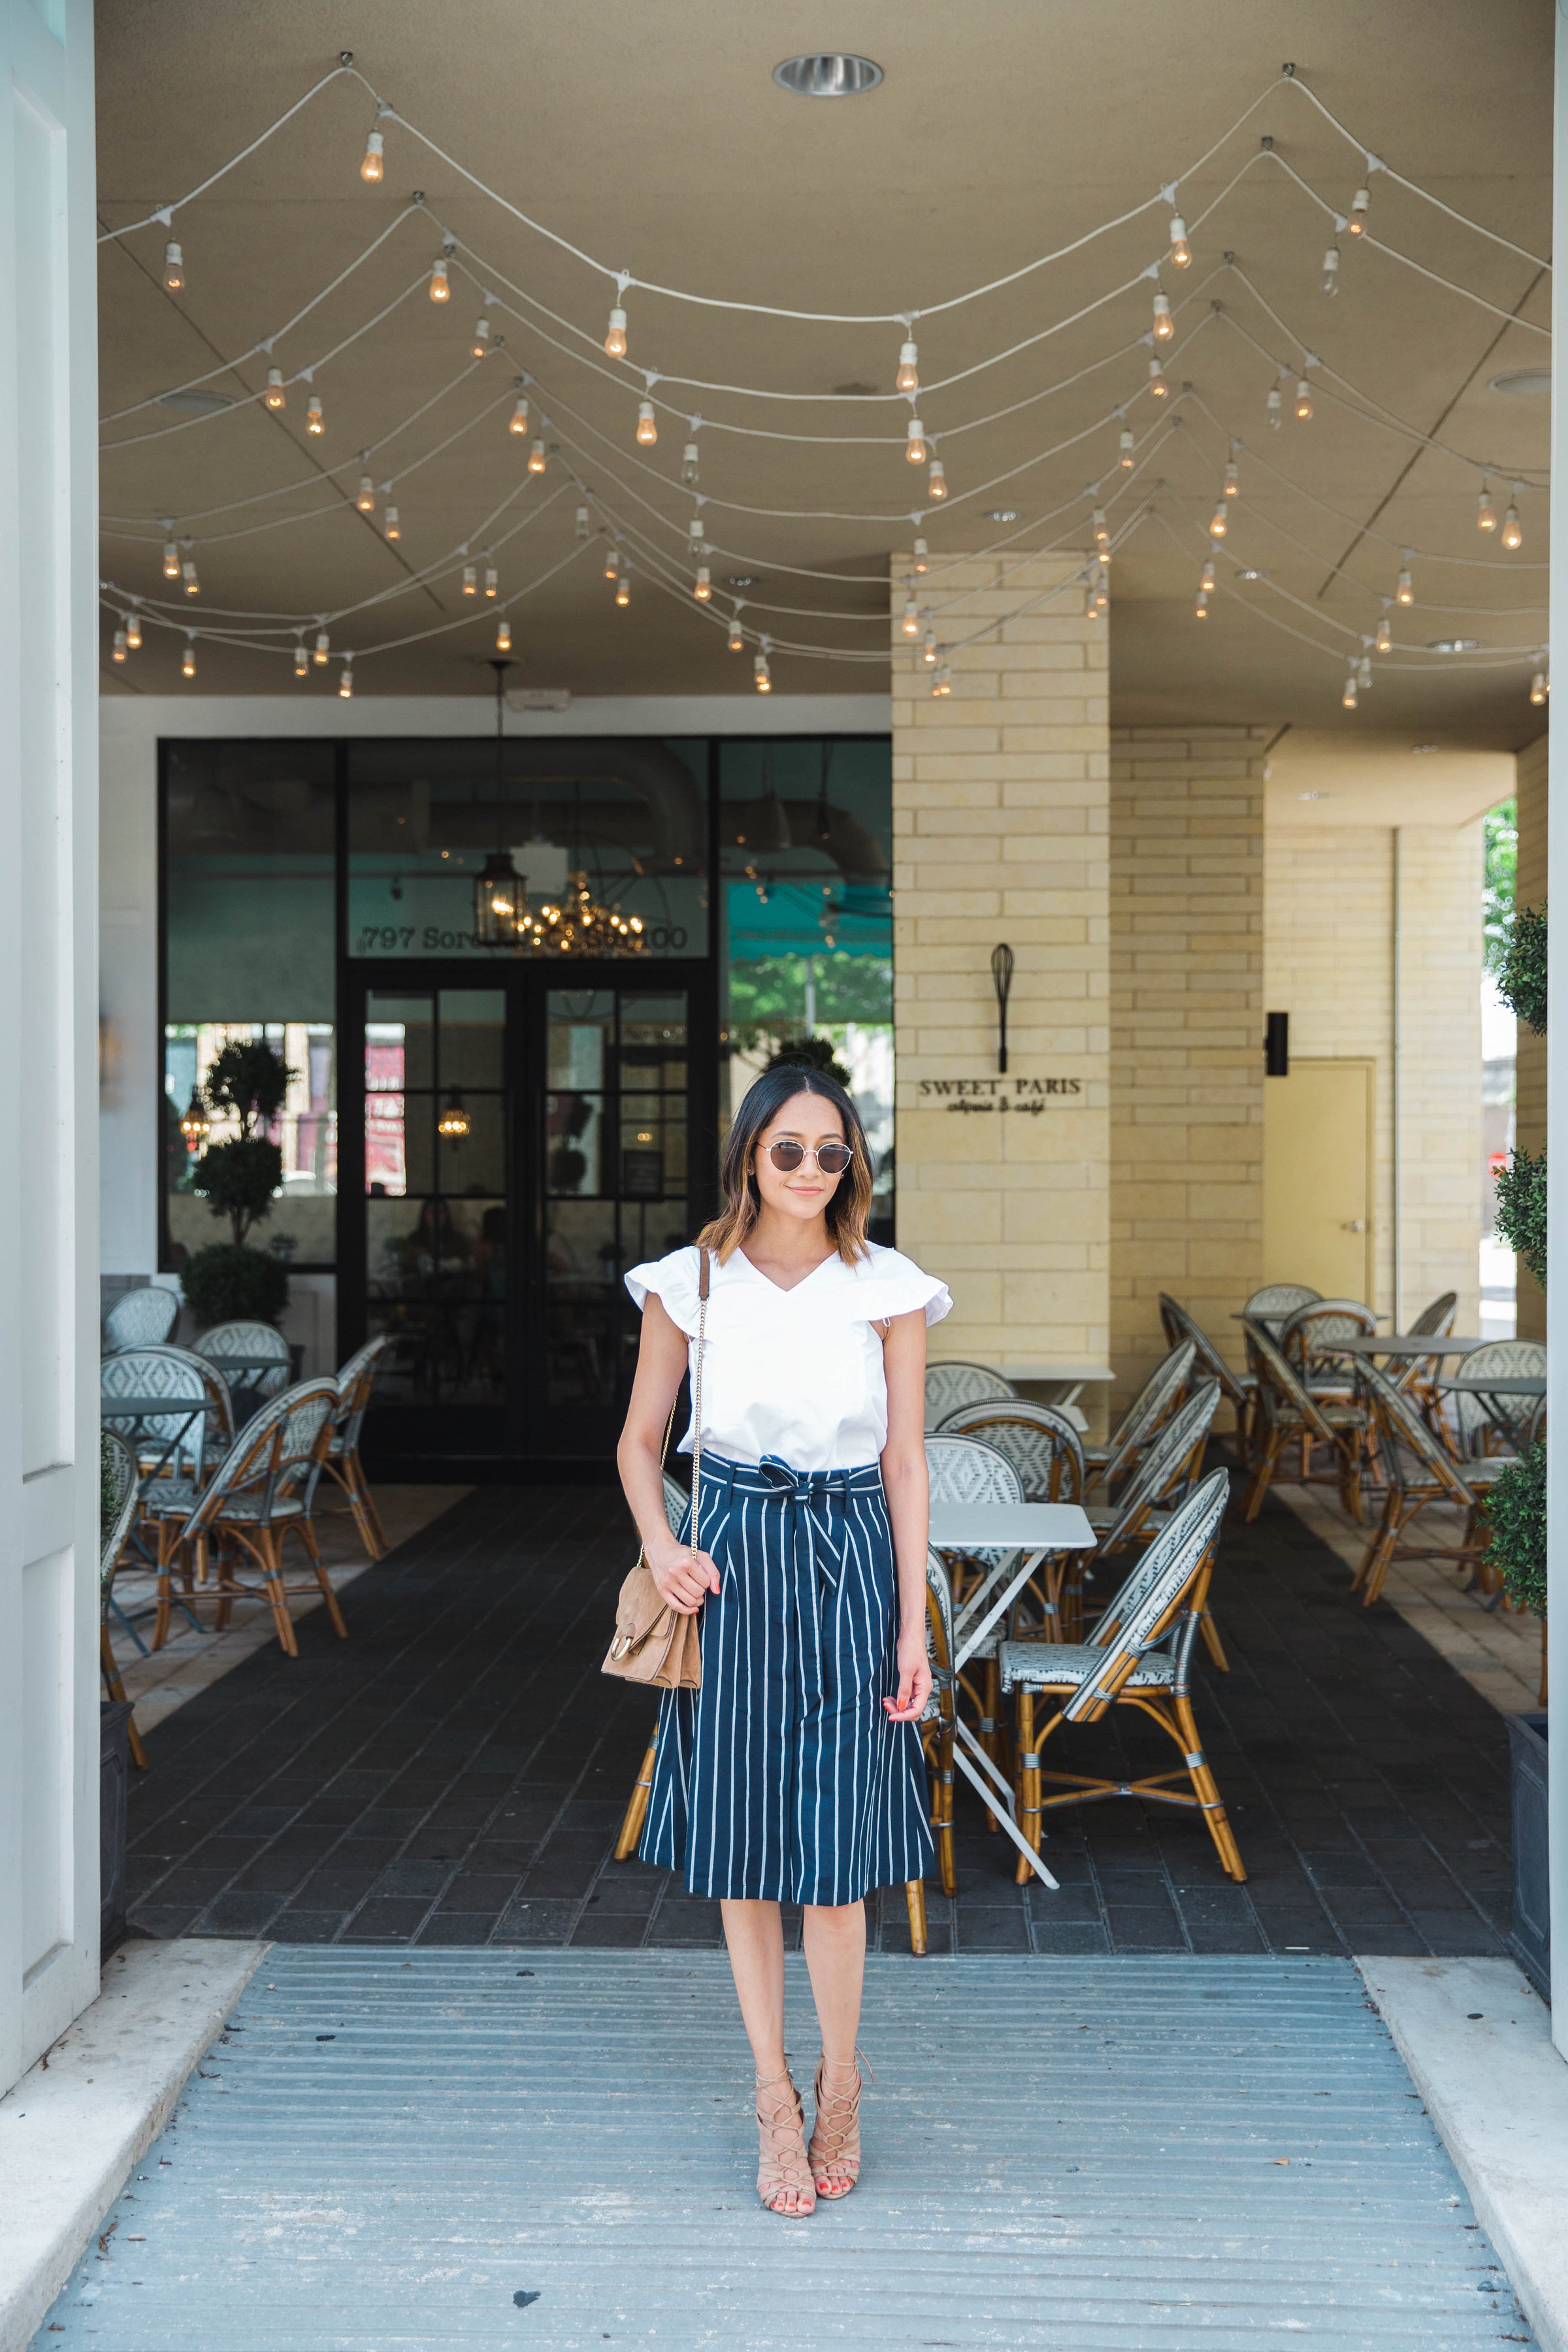 Ruffle Sleeves | A Line Skirt | Summer Look | Date Night Look